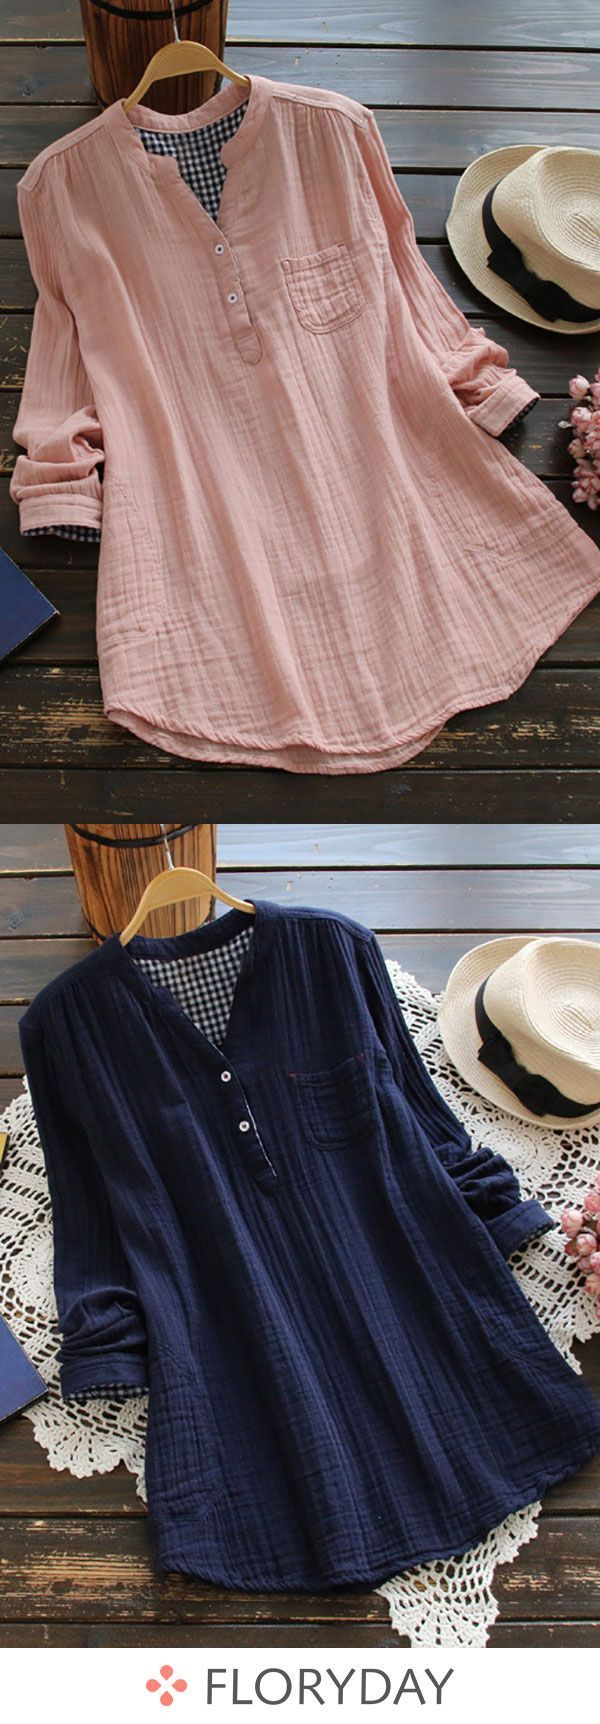 best fashion images on pinterest shell tops casual gowns and